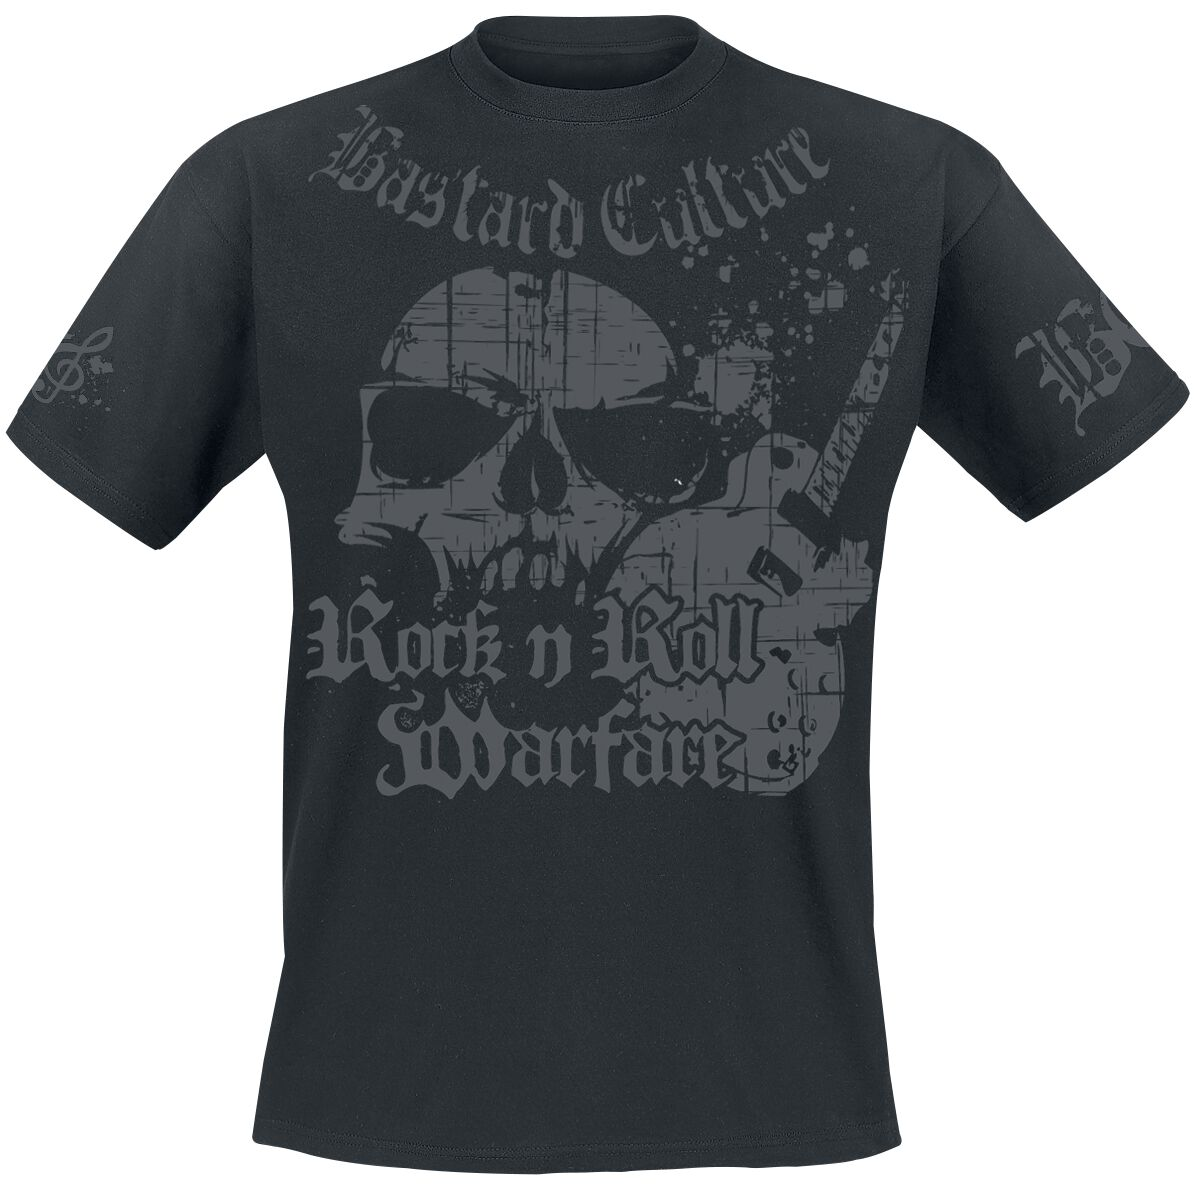 Image of Bastard Culture Rock 'n' Roll Warfare T-Shirt schwarz